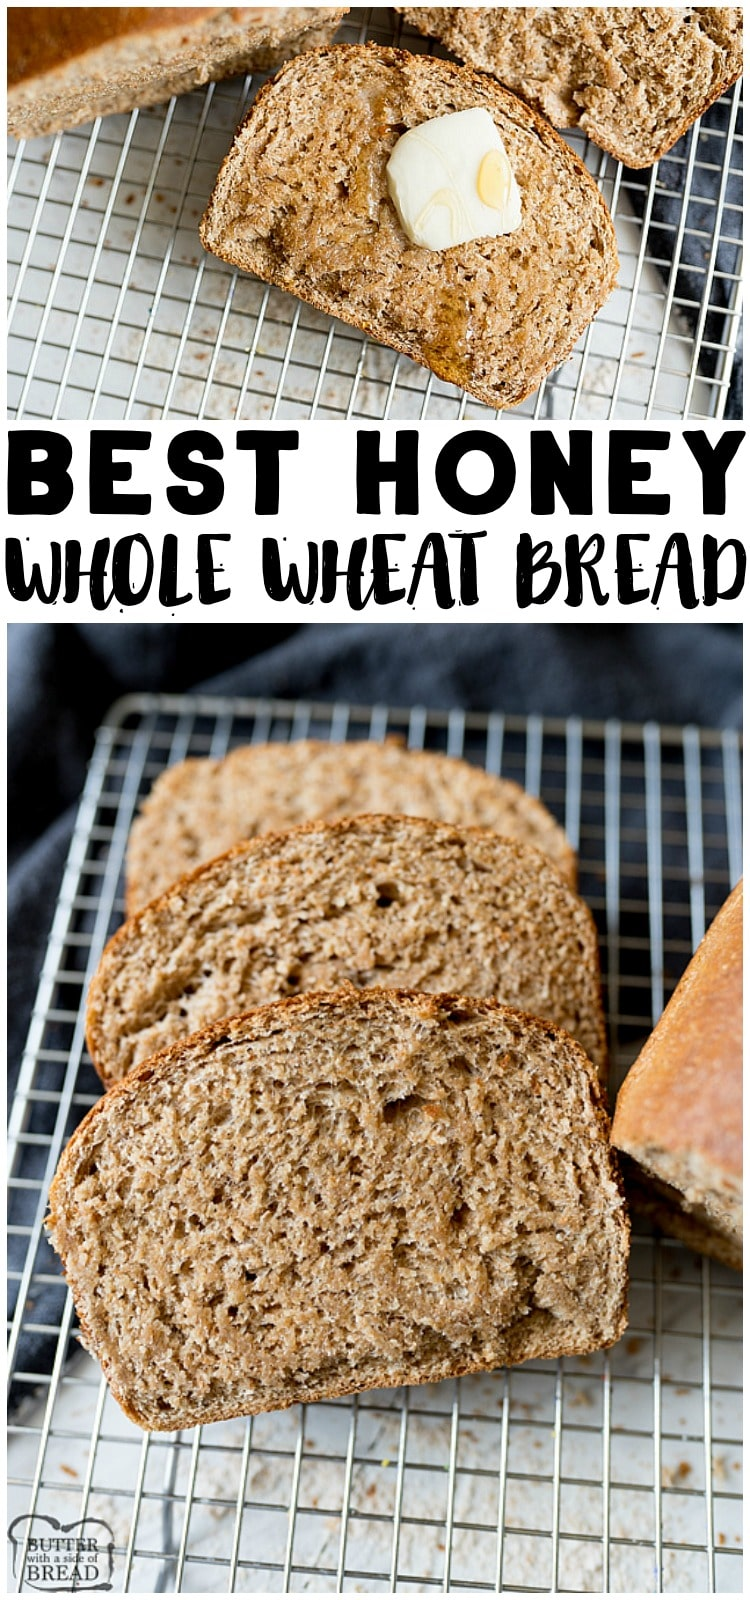 Honey Whole Wheat Bread is adelicious, hearty whole Wheat Bread recipe is perfect for any time of the day and any type of meal. #honeywheat #wholewheat #homemadebread #bread #recipe #baking from Butter With a Side of Bread